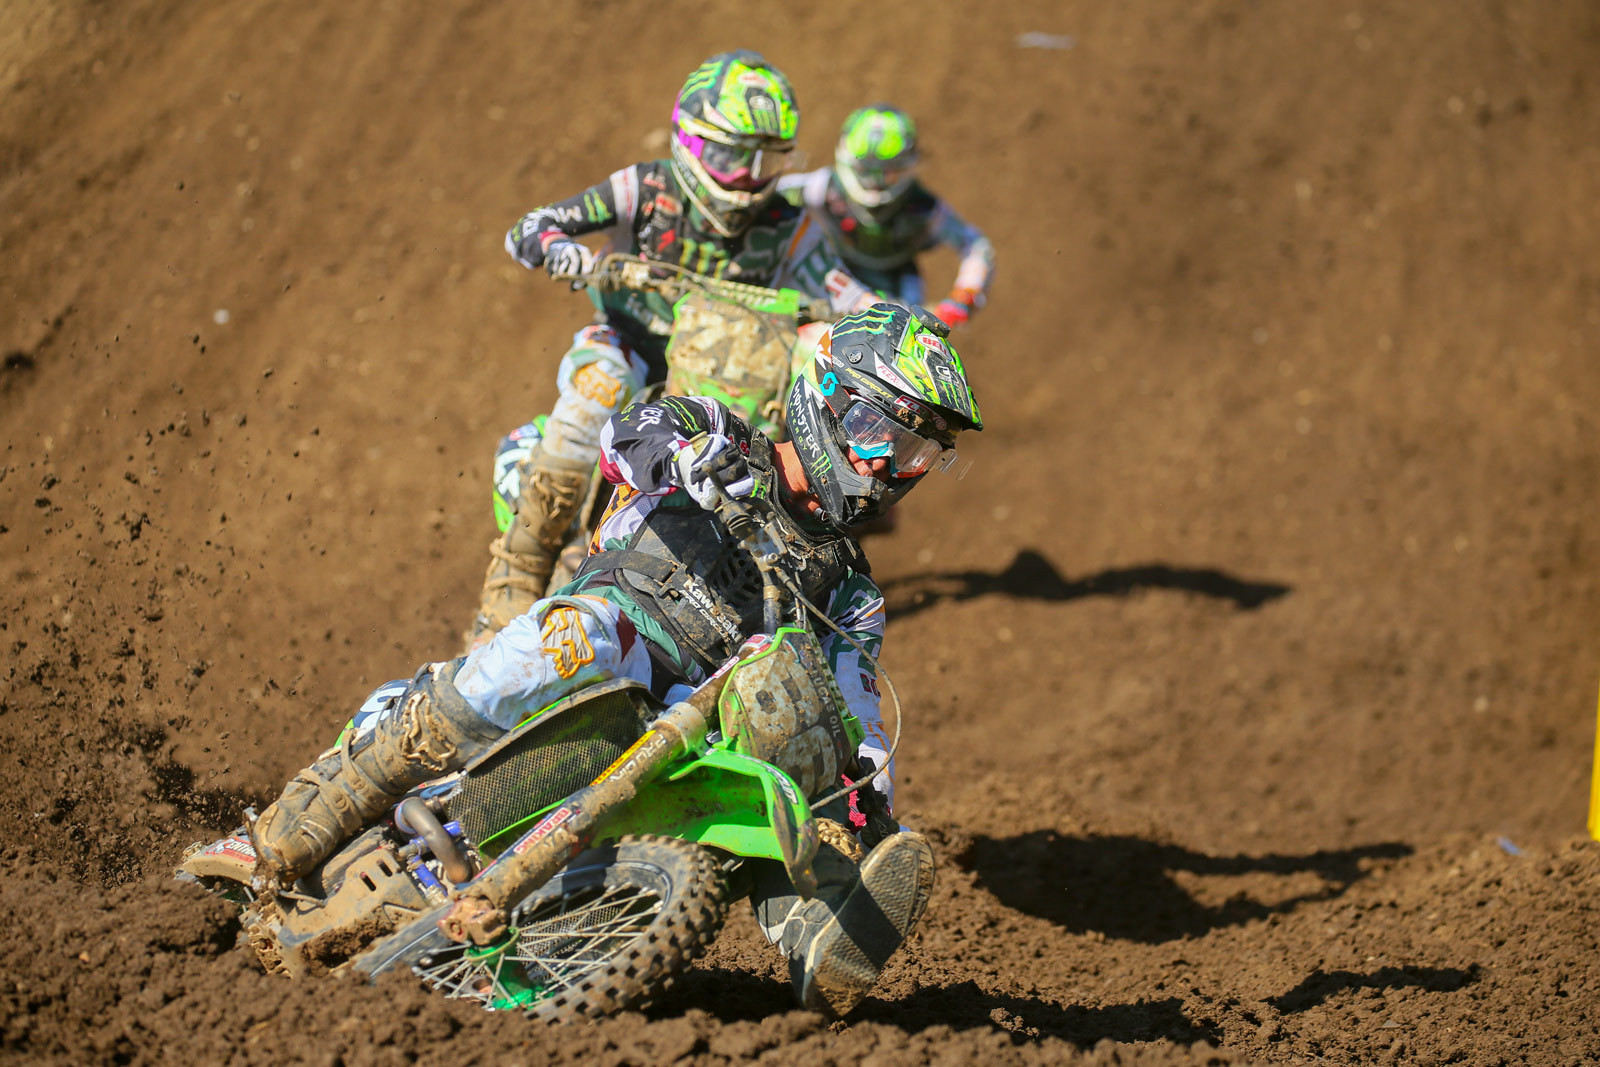 Arnaud Tonus, Austin Forkner, Joey Savatgy - Photo Blast: Muddy Creek - Motocross Pictures - Vital MX